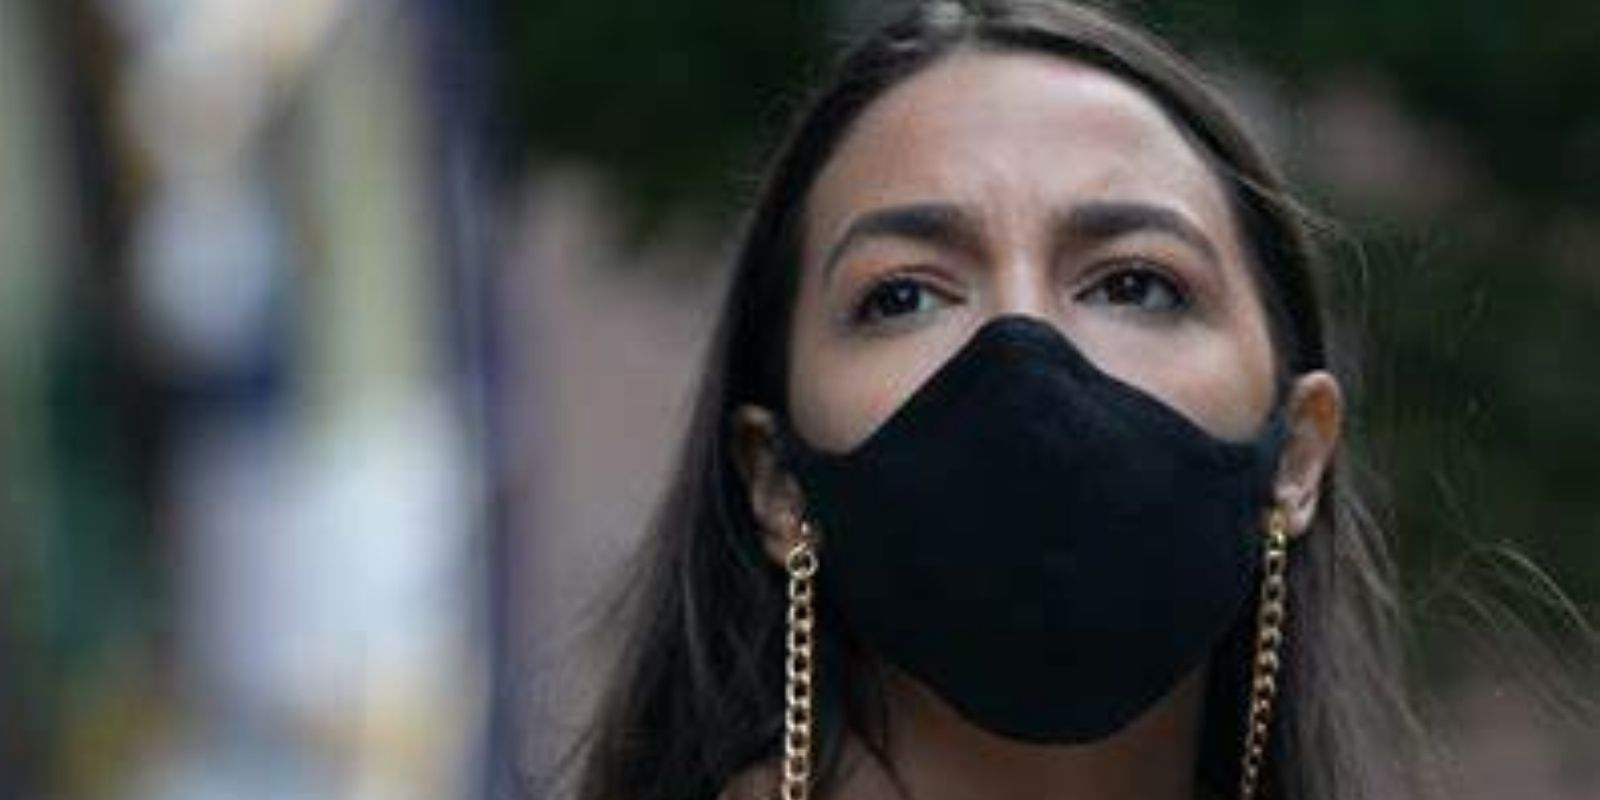 'Deeply sorry' AOC explains why she voted 'present' on increasing funding for Iron Dome